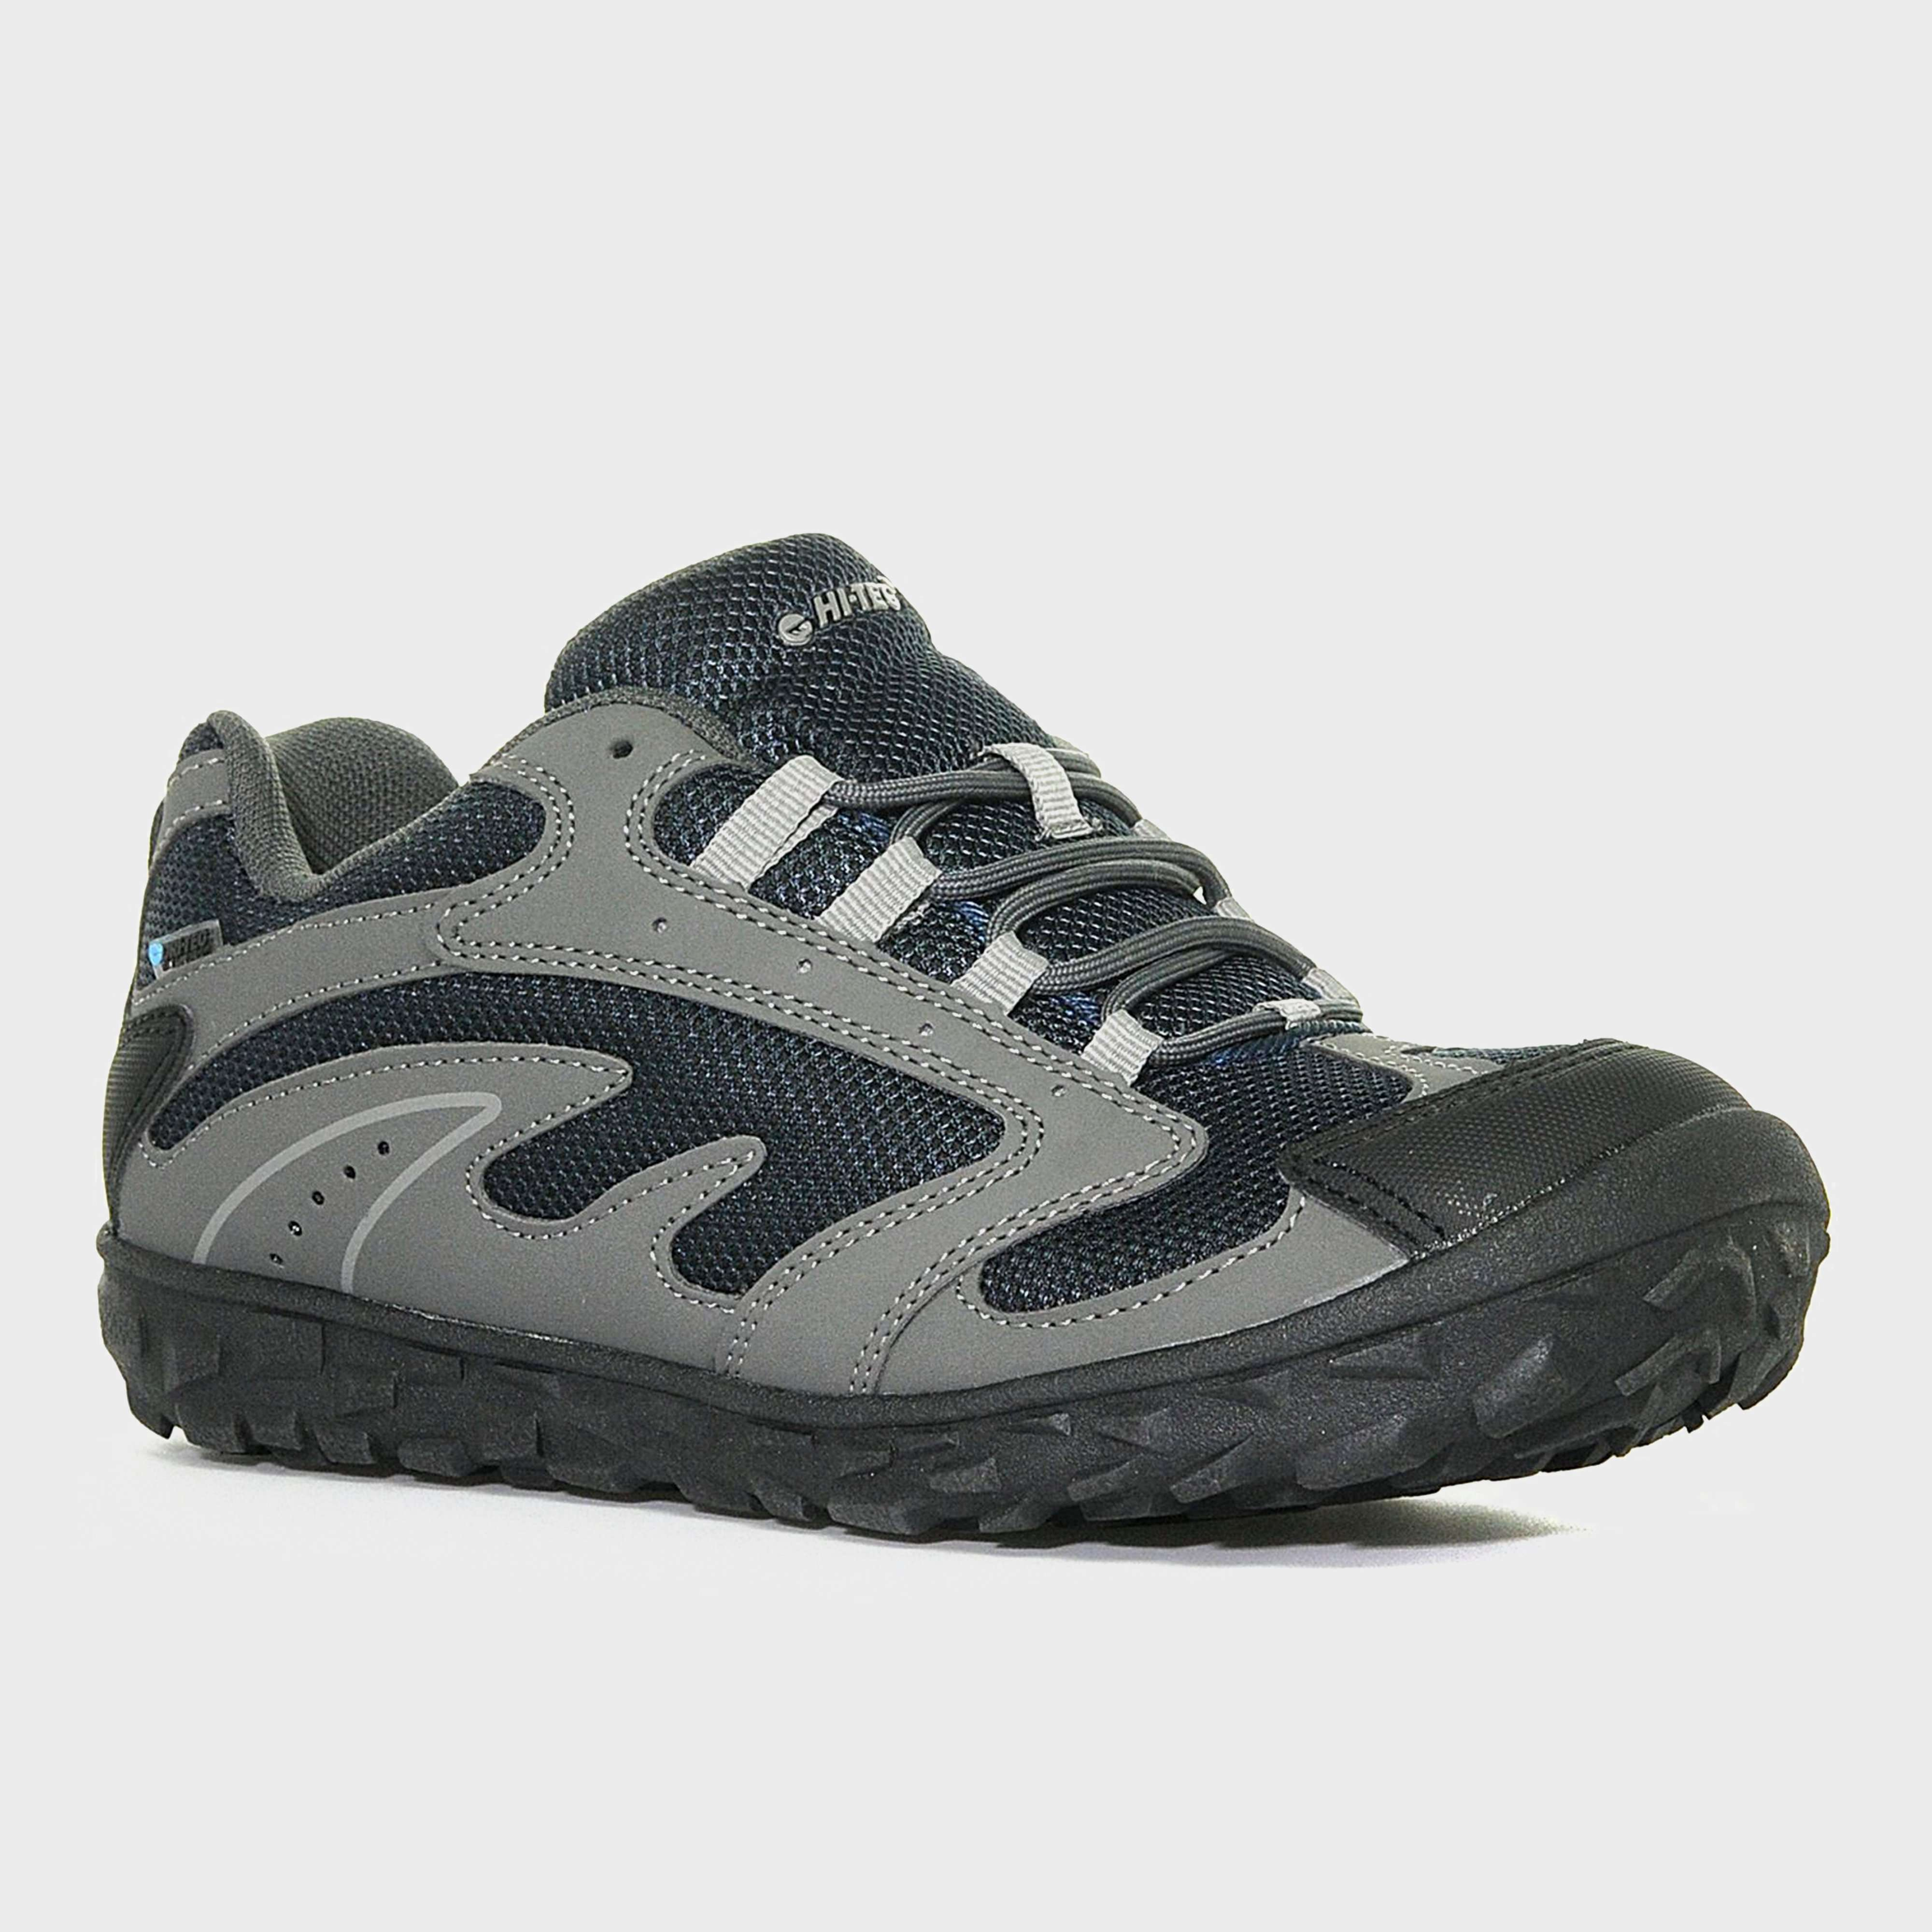 HI TEC Boys' Meridian Low-Cut Waterproof Multi-Sport Shoe